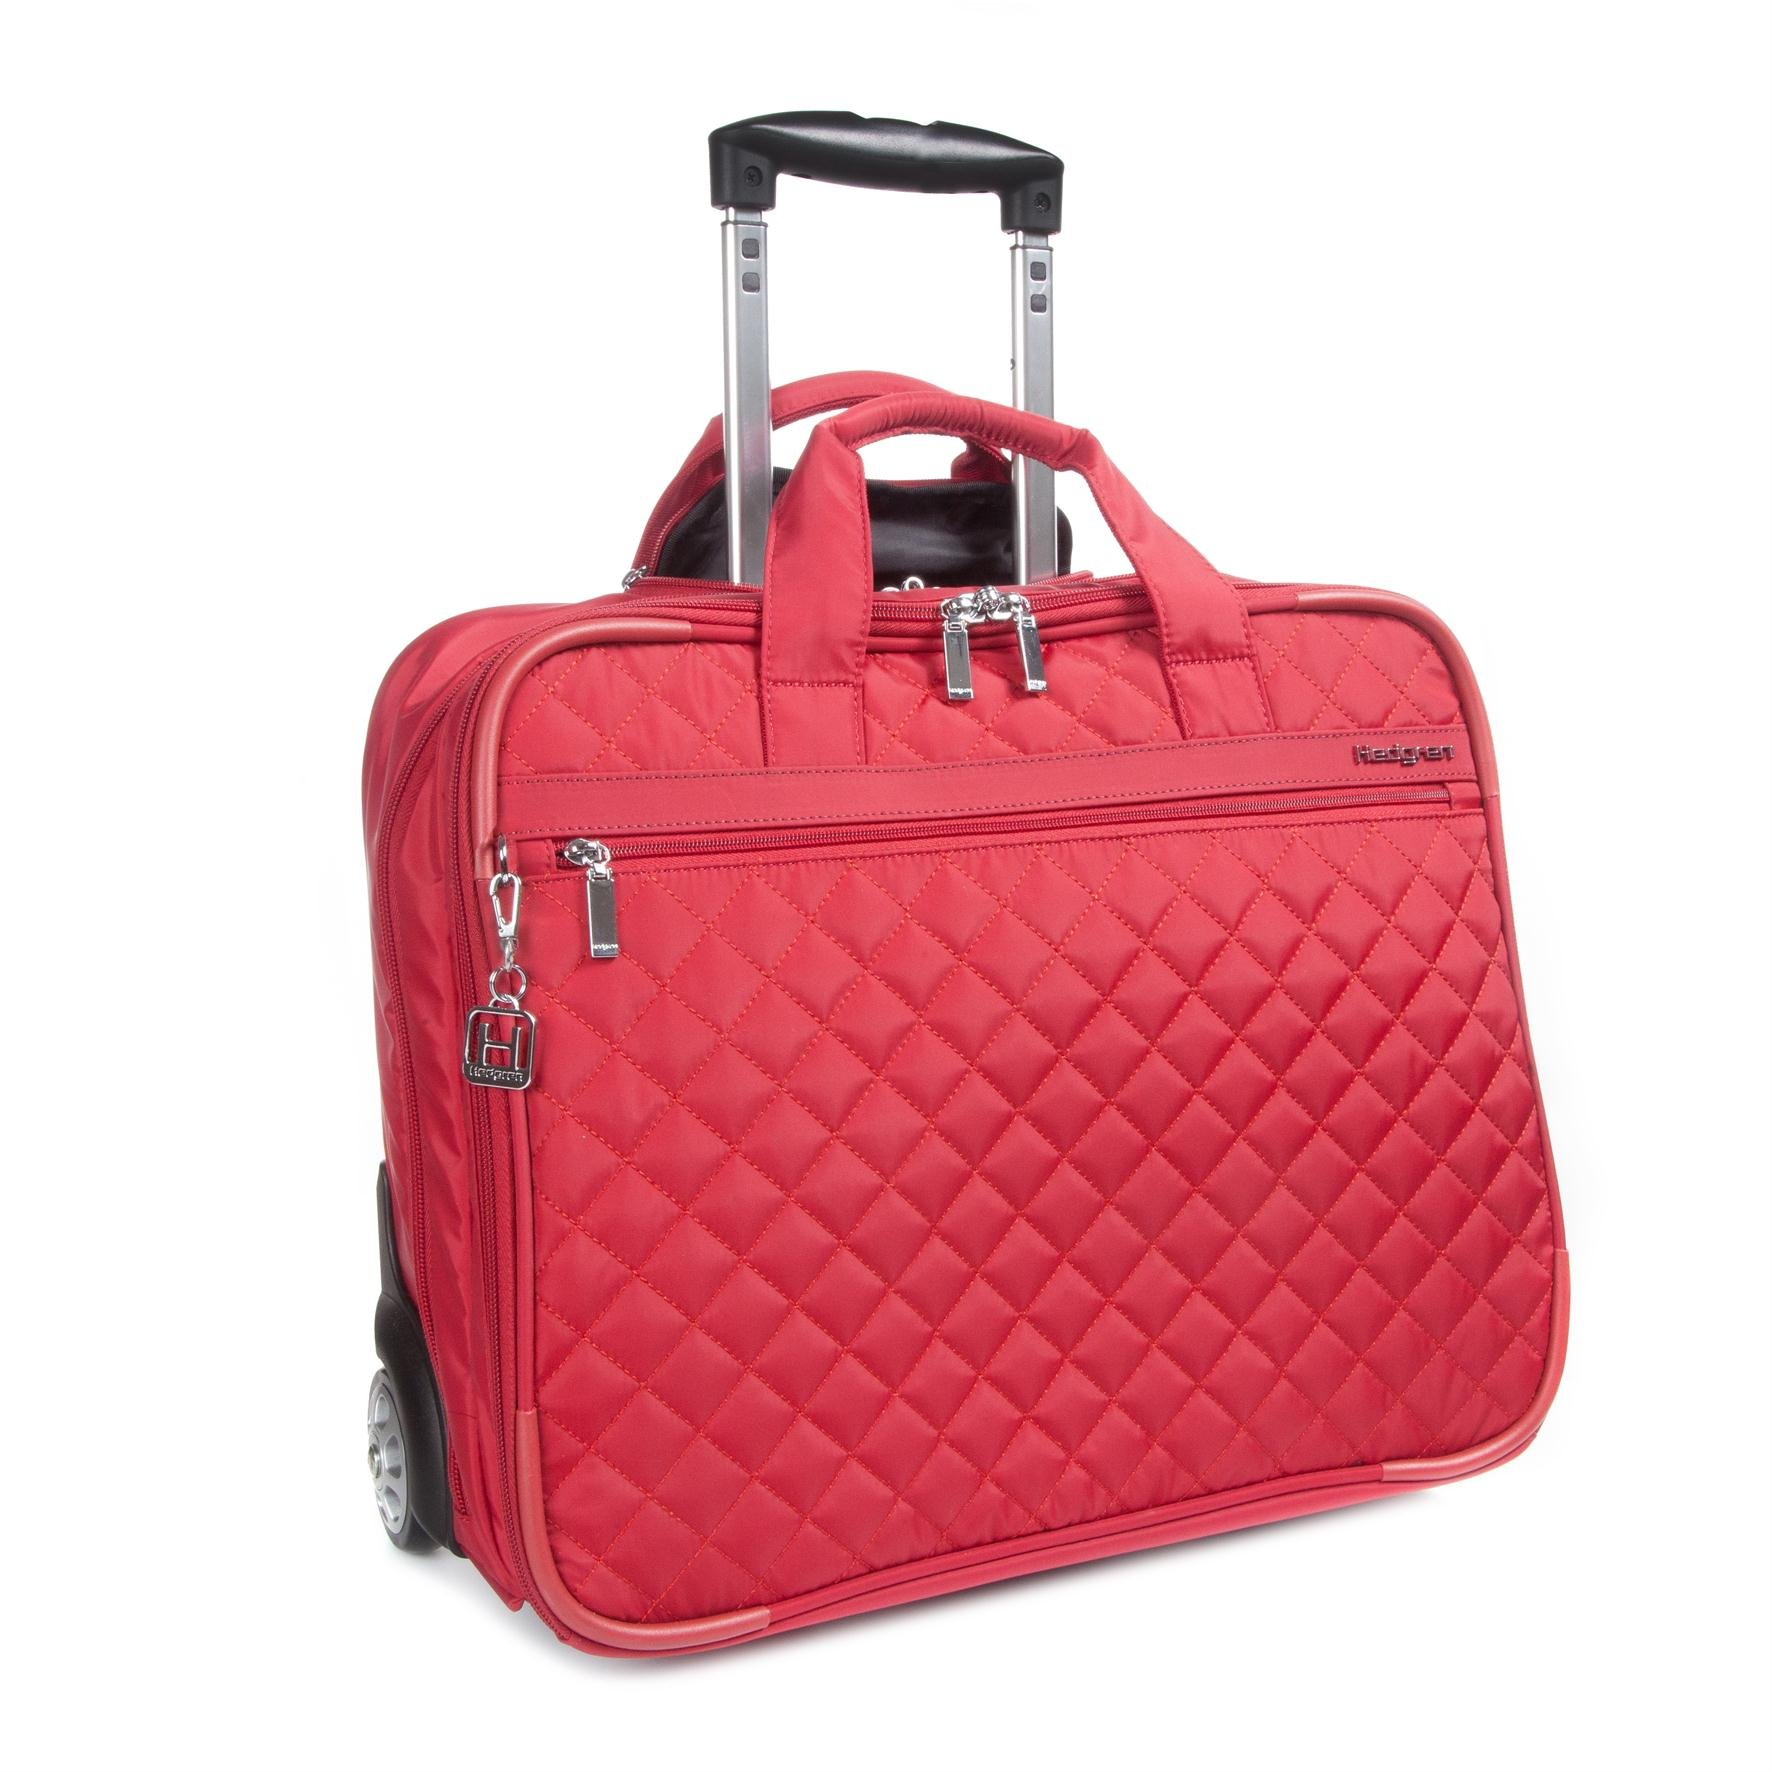 Hedgren Women's Cindy Business Trolley 15.6 Briefcase, New Bull Red, One Size